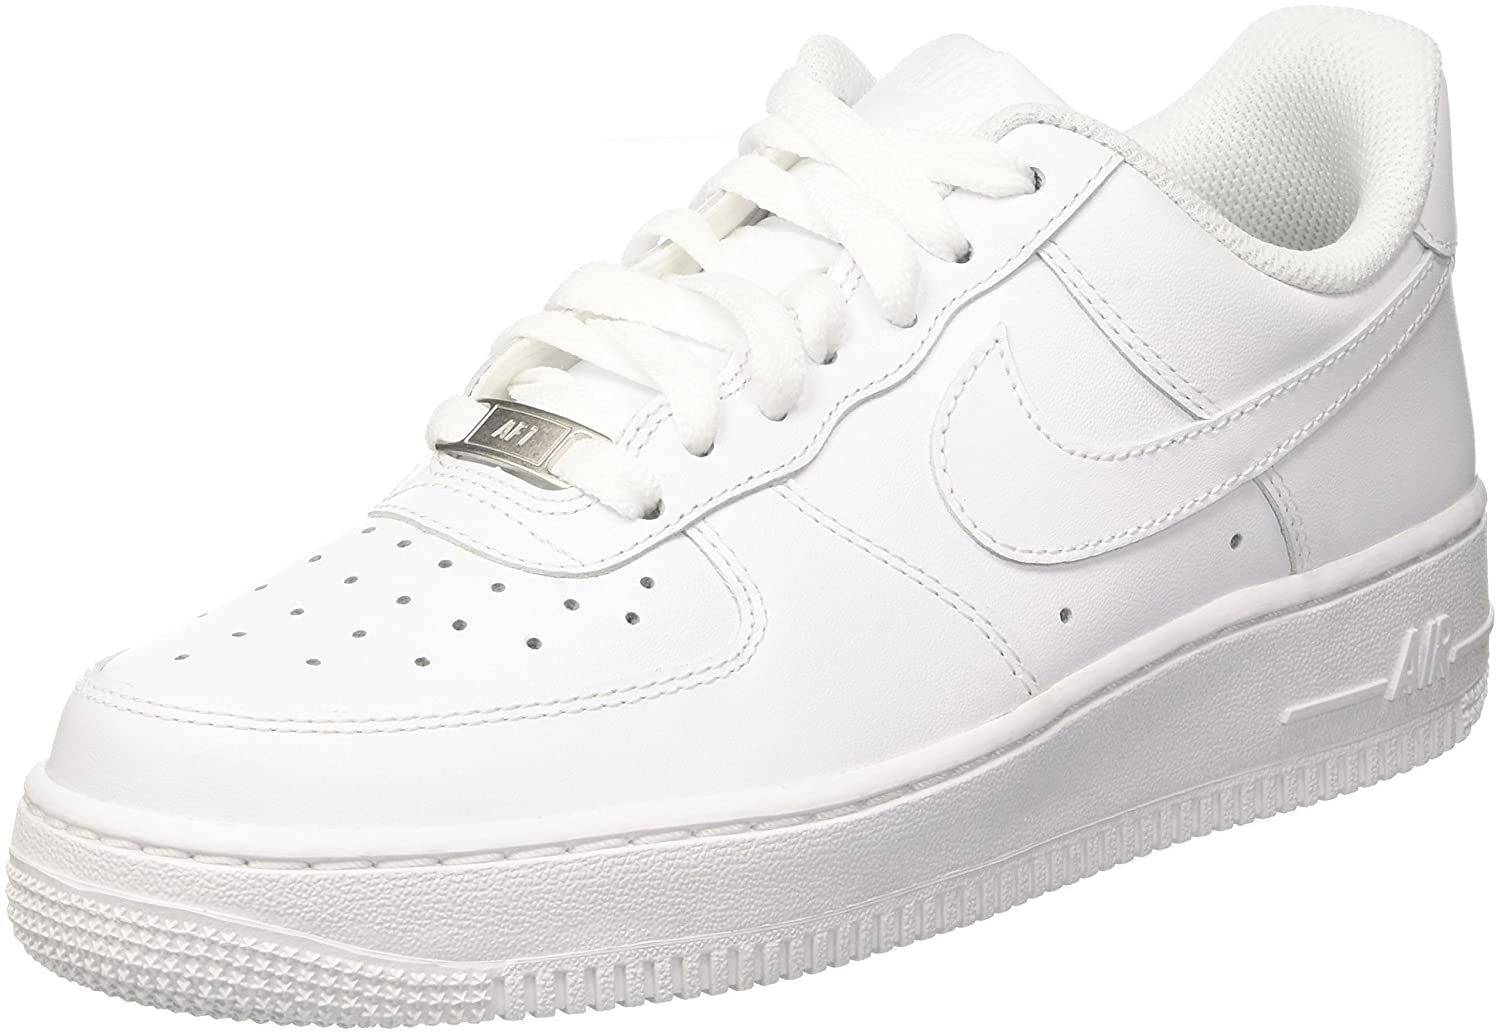 Nike Air Force 1 '07 Sneaker für Herren